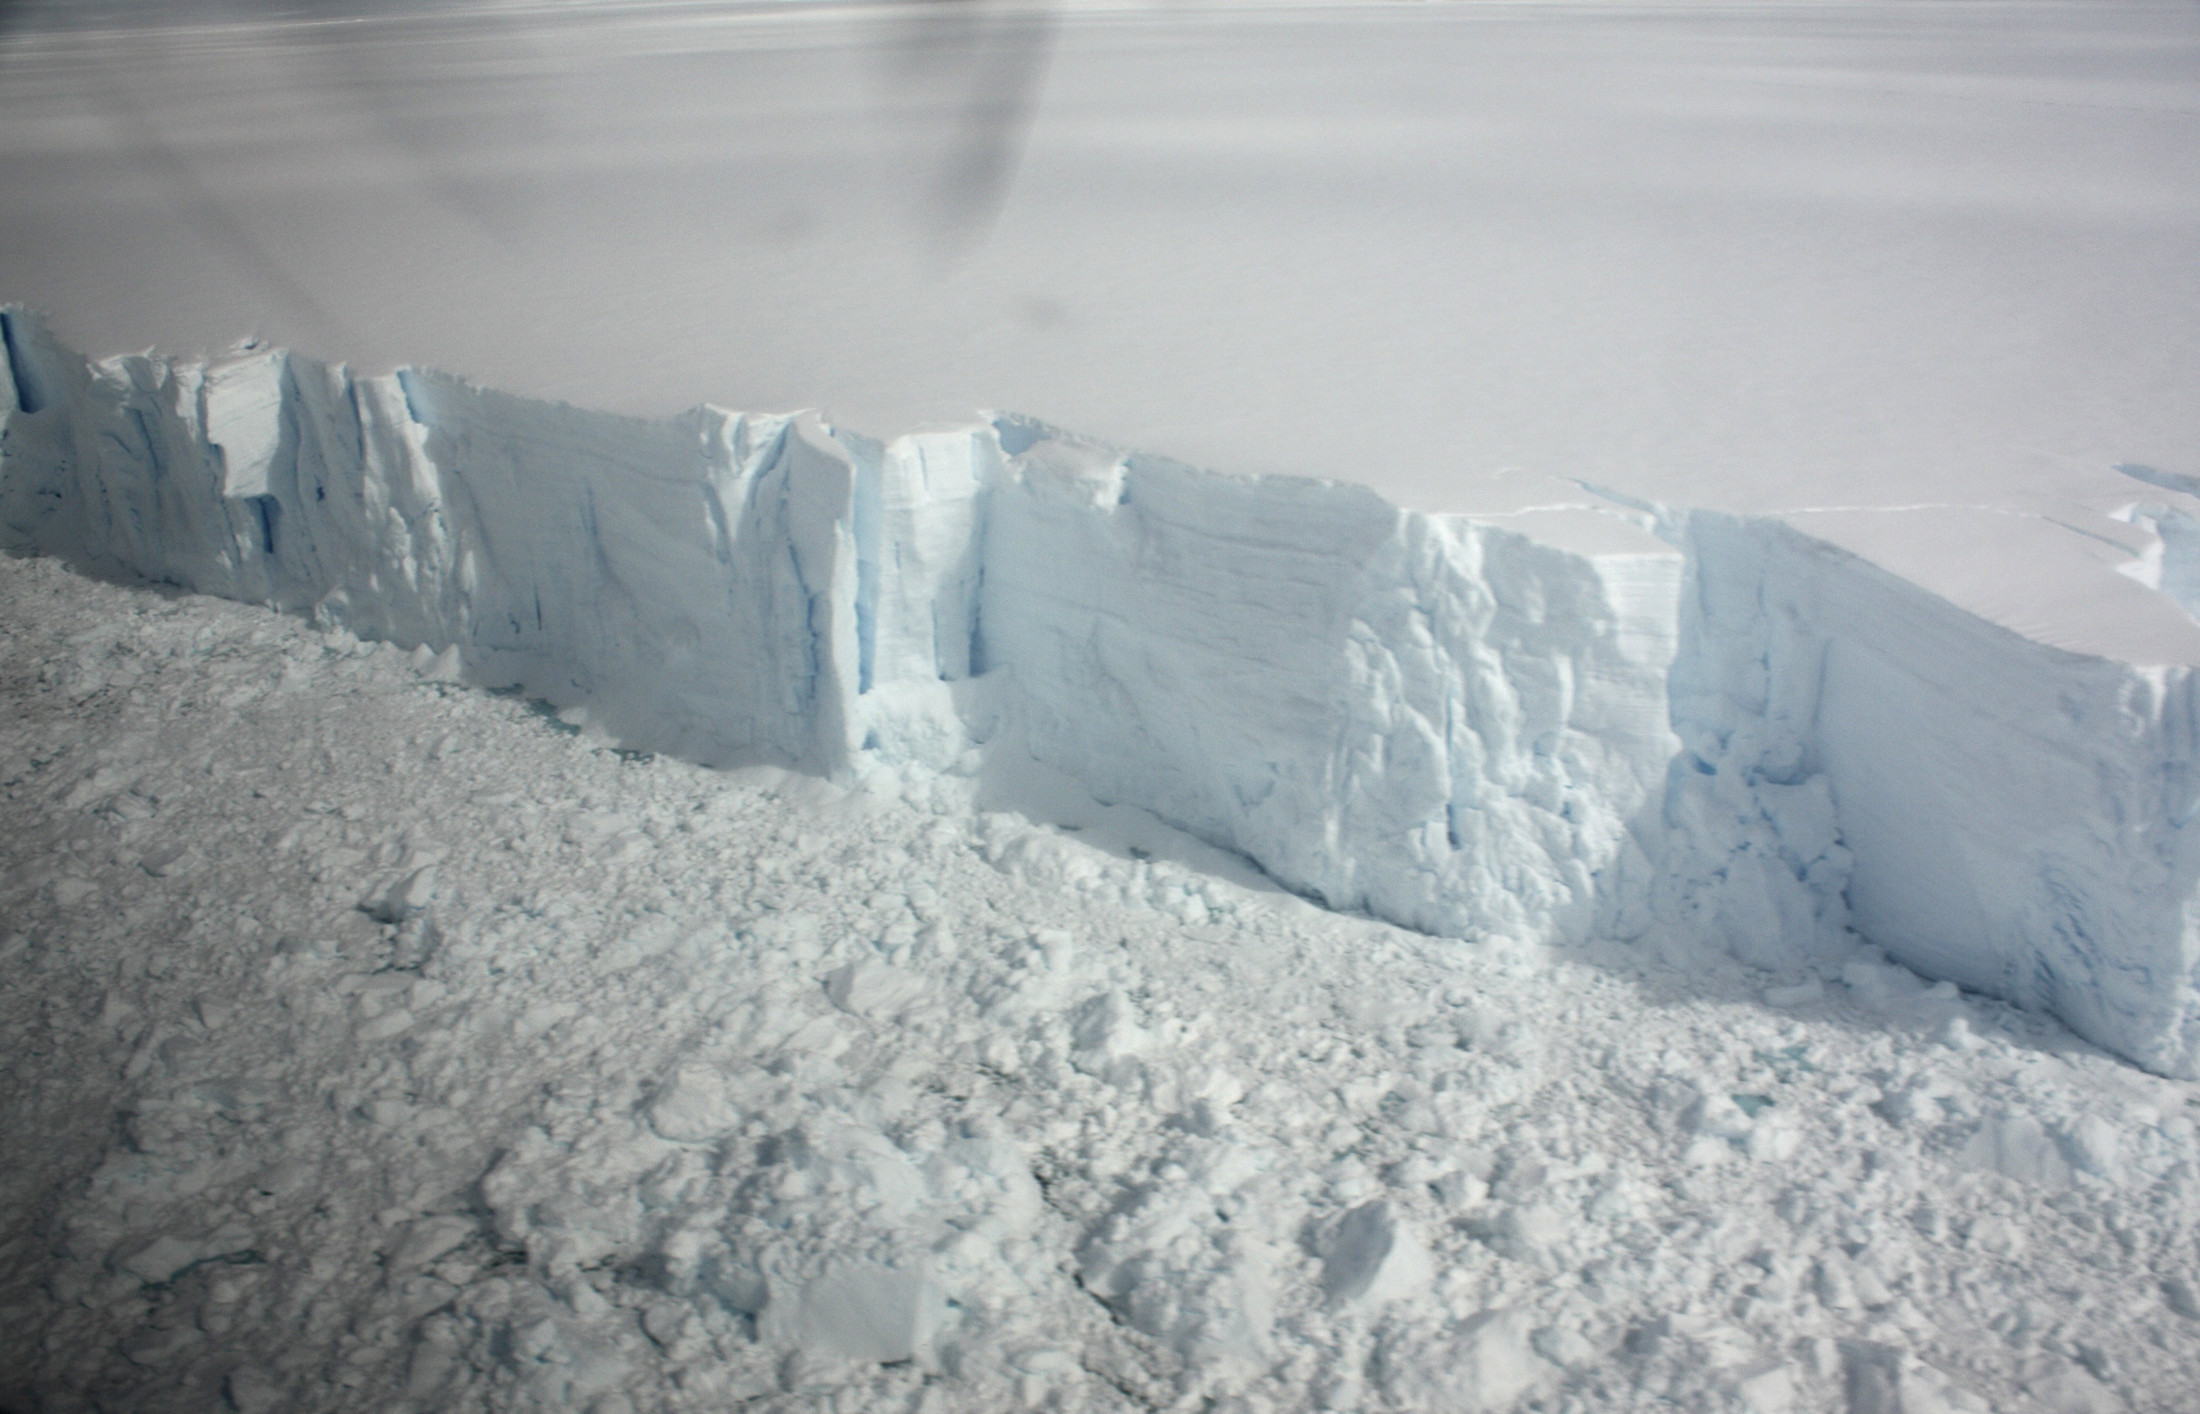 A 20 metre-high ice cliff forming the edge of the Wilkins Ice shelf on the Antarctic Peninsula is seen from a plane January 18, 2009. The huge Antarctic ice shelf is on the brink of collapse with just a sliver of ice holding it in place, the latest victim of global warming that is altering maps of the frozen continent.